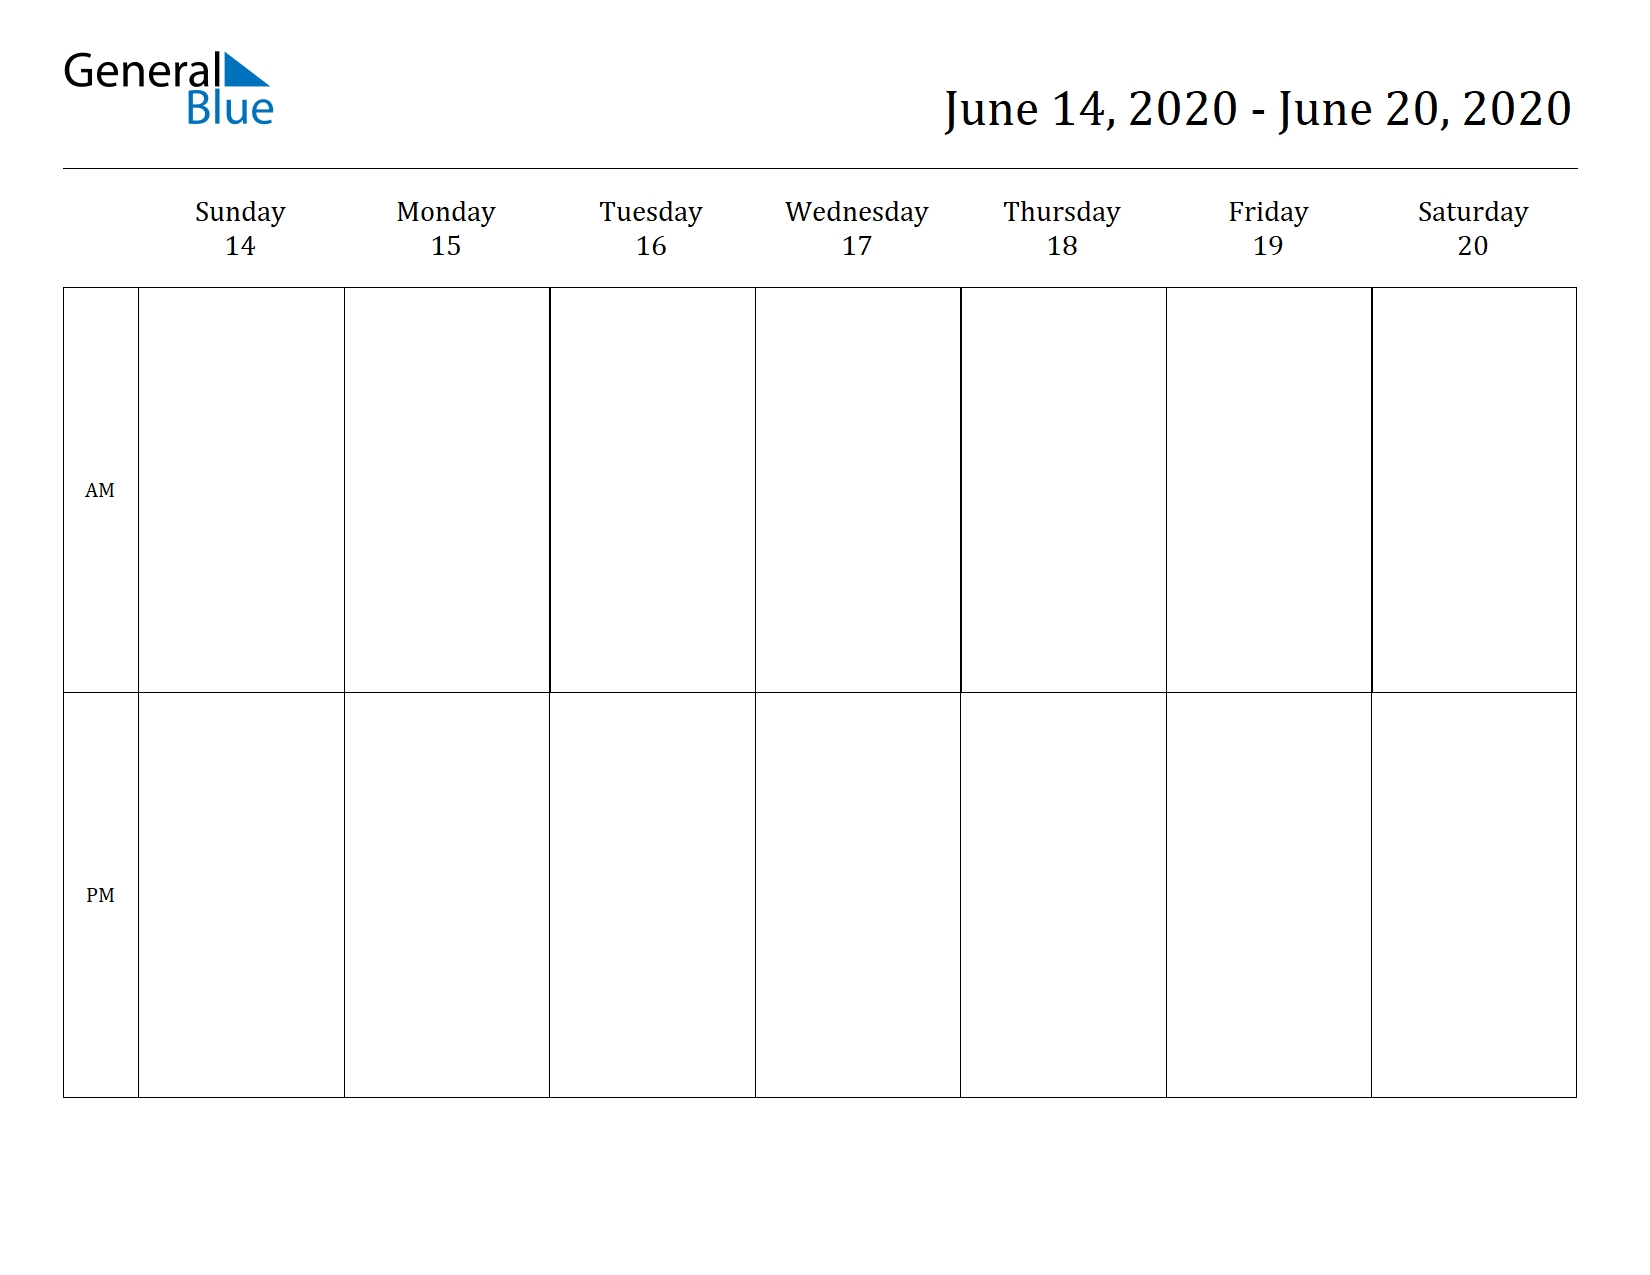 Free Printable Calendar In Pdf, Word And Excel intended for 2020 Calendar Format Monday Through Friday Week